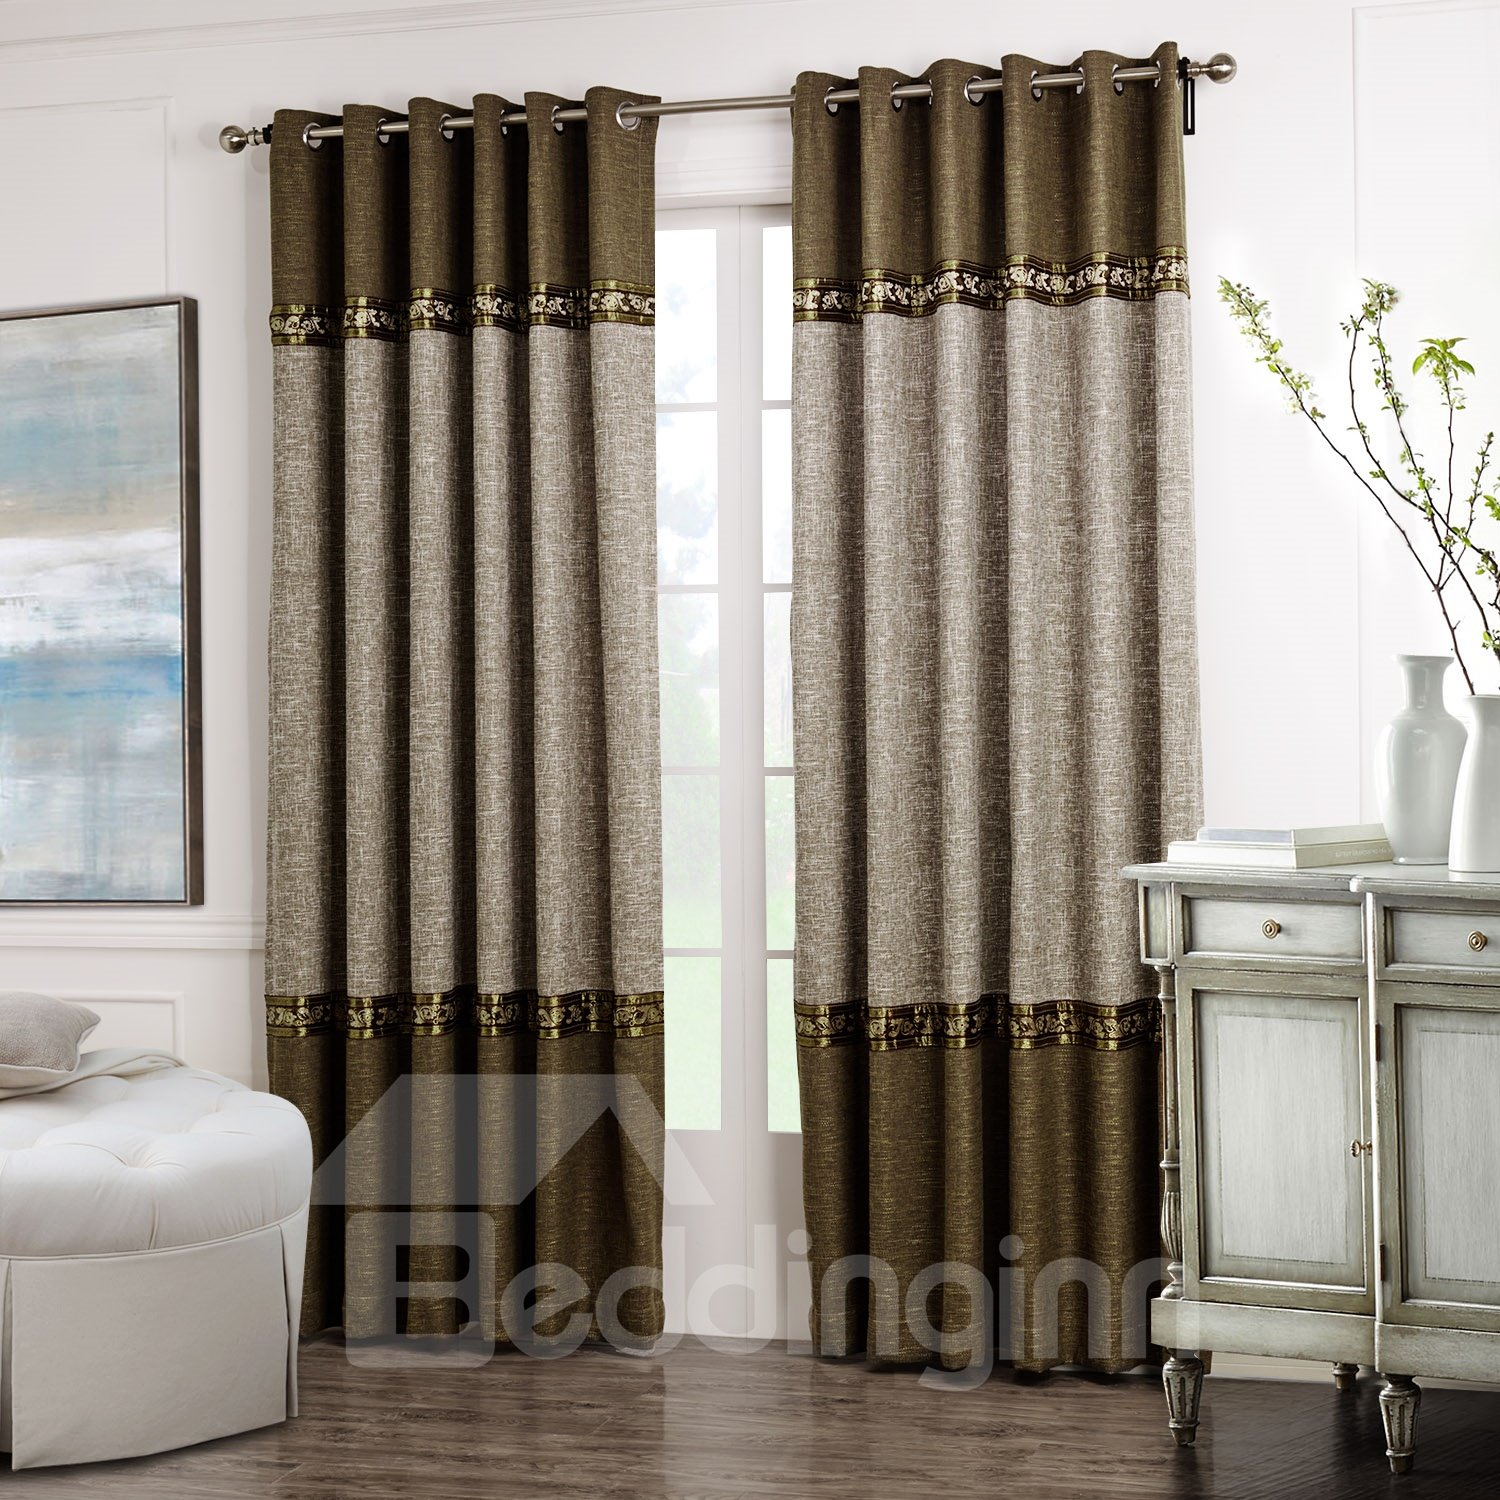 Fabulous Brown Gray Joint Color Decorative Border Design Custom Curtain